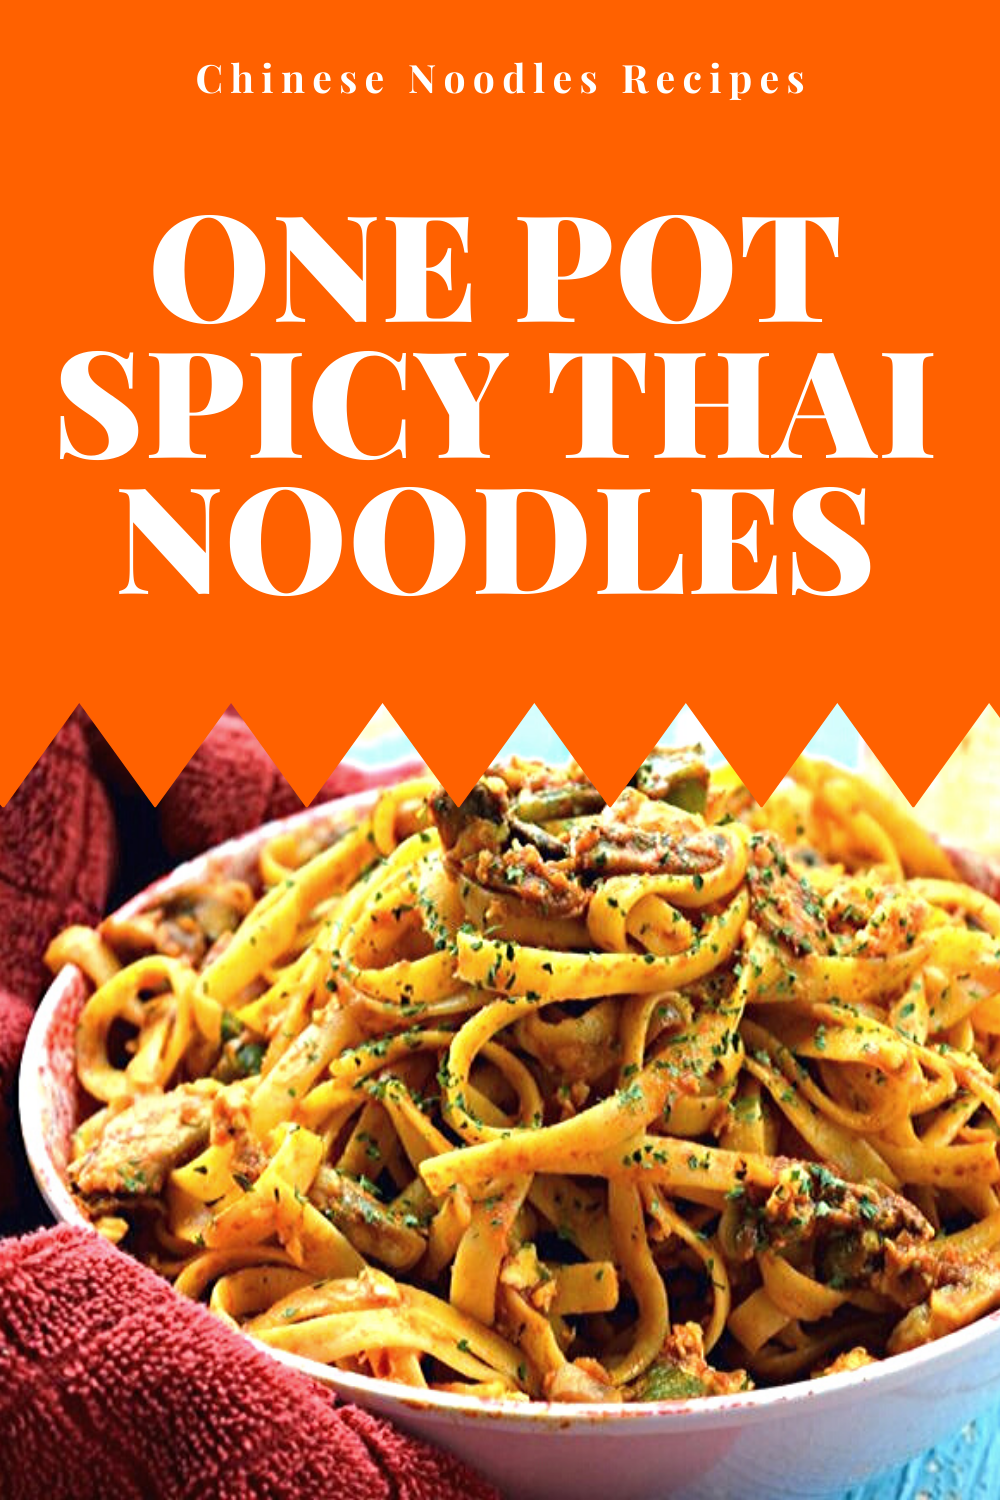 Photo of Chinese Noodles Recipes | One Pot Spicy Thai Noodles